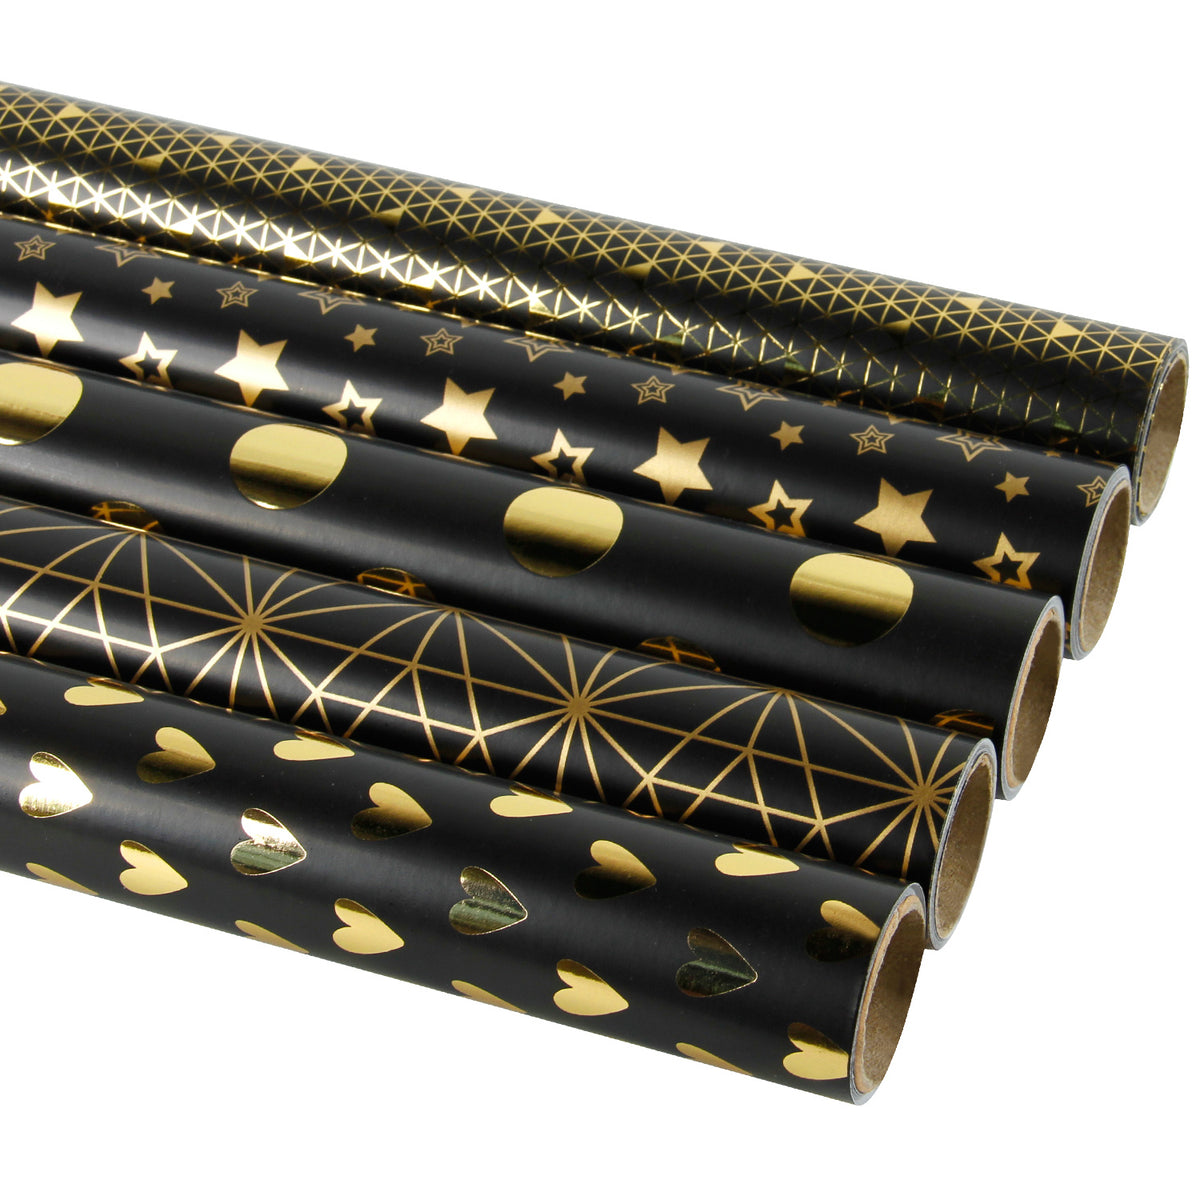 Wrapaholic-Gold-Foil-Printing-Gift-Wrapping-Paper-Roll-5 Rolls-Set-Black-2